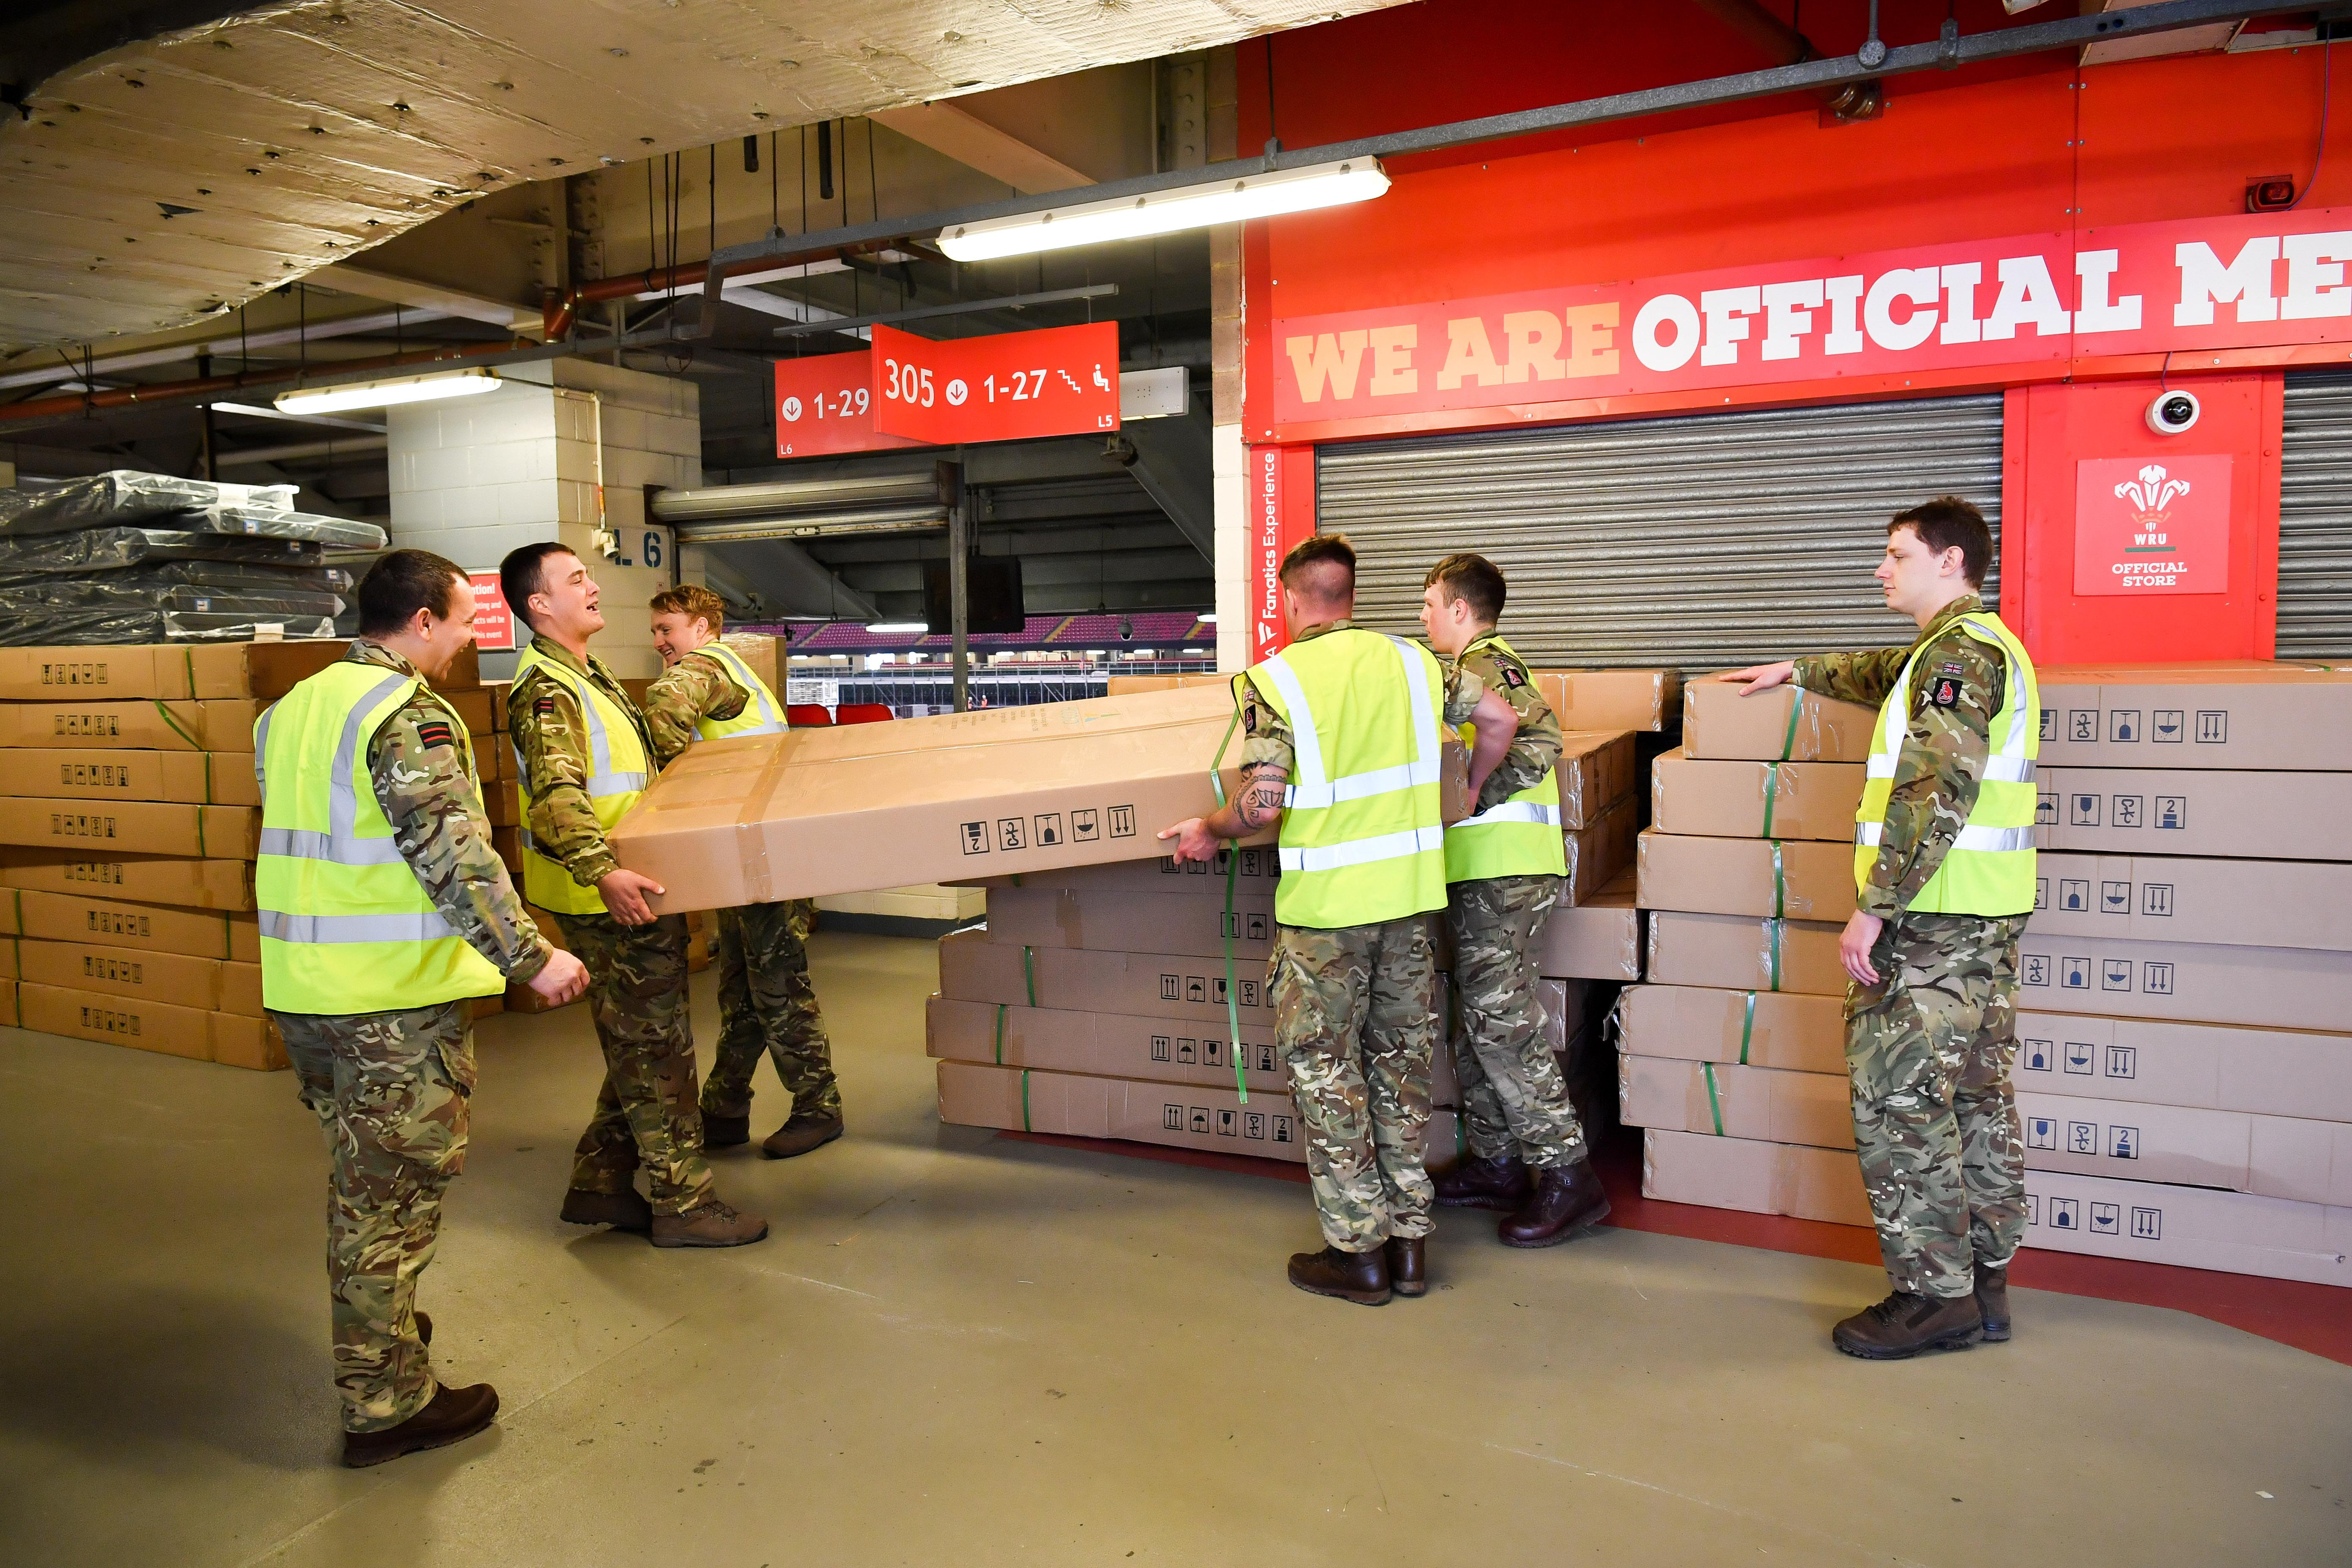 The British Army help move medical supplies at the Principality Stadium, Cardiff, which is being turned into a 2000-bed hospital to help fight coronavirus. (Photo by Ben Birchall/PA Images via Getty Images)